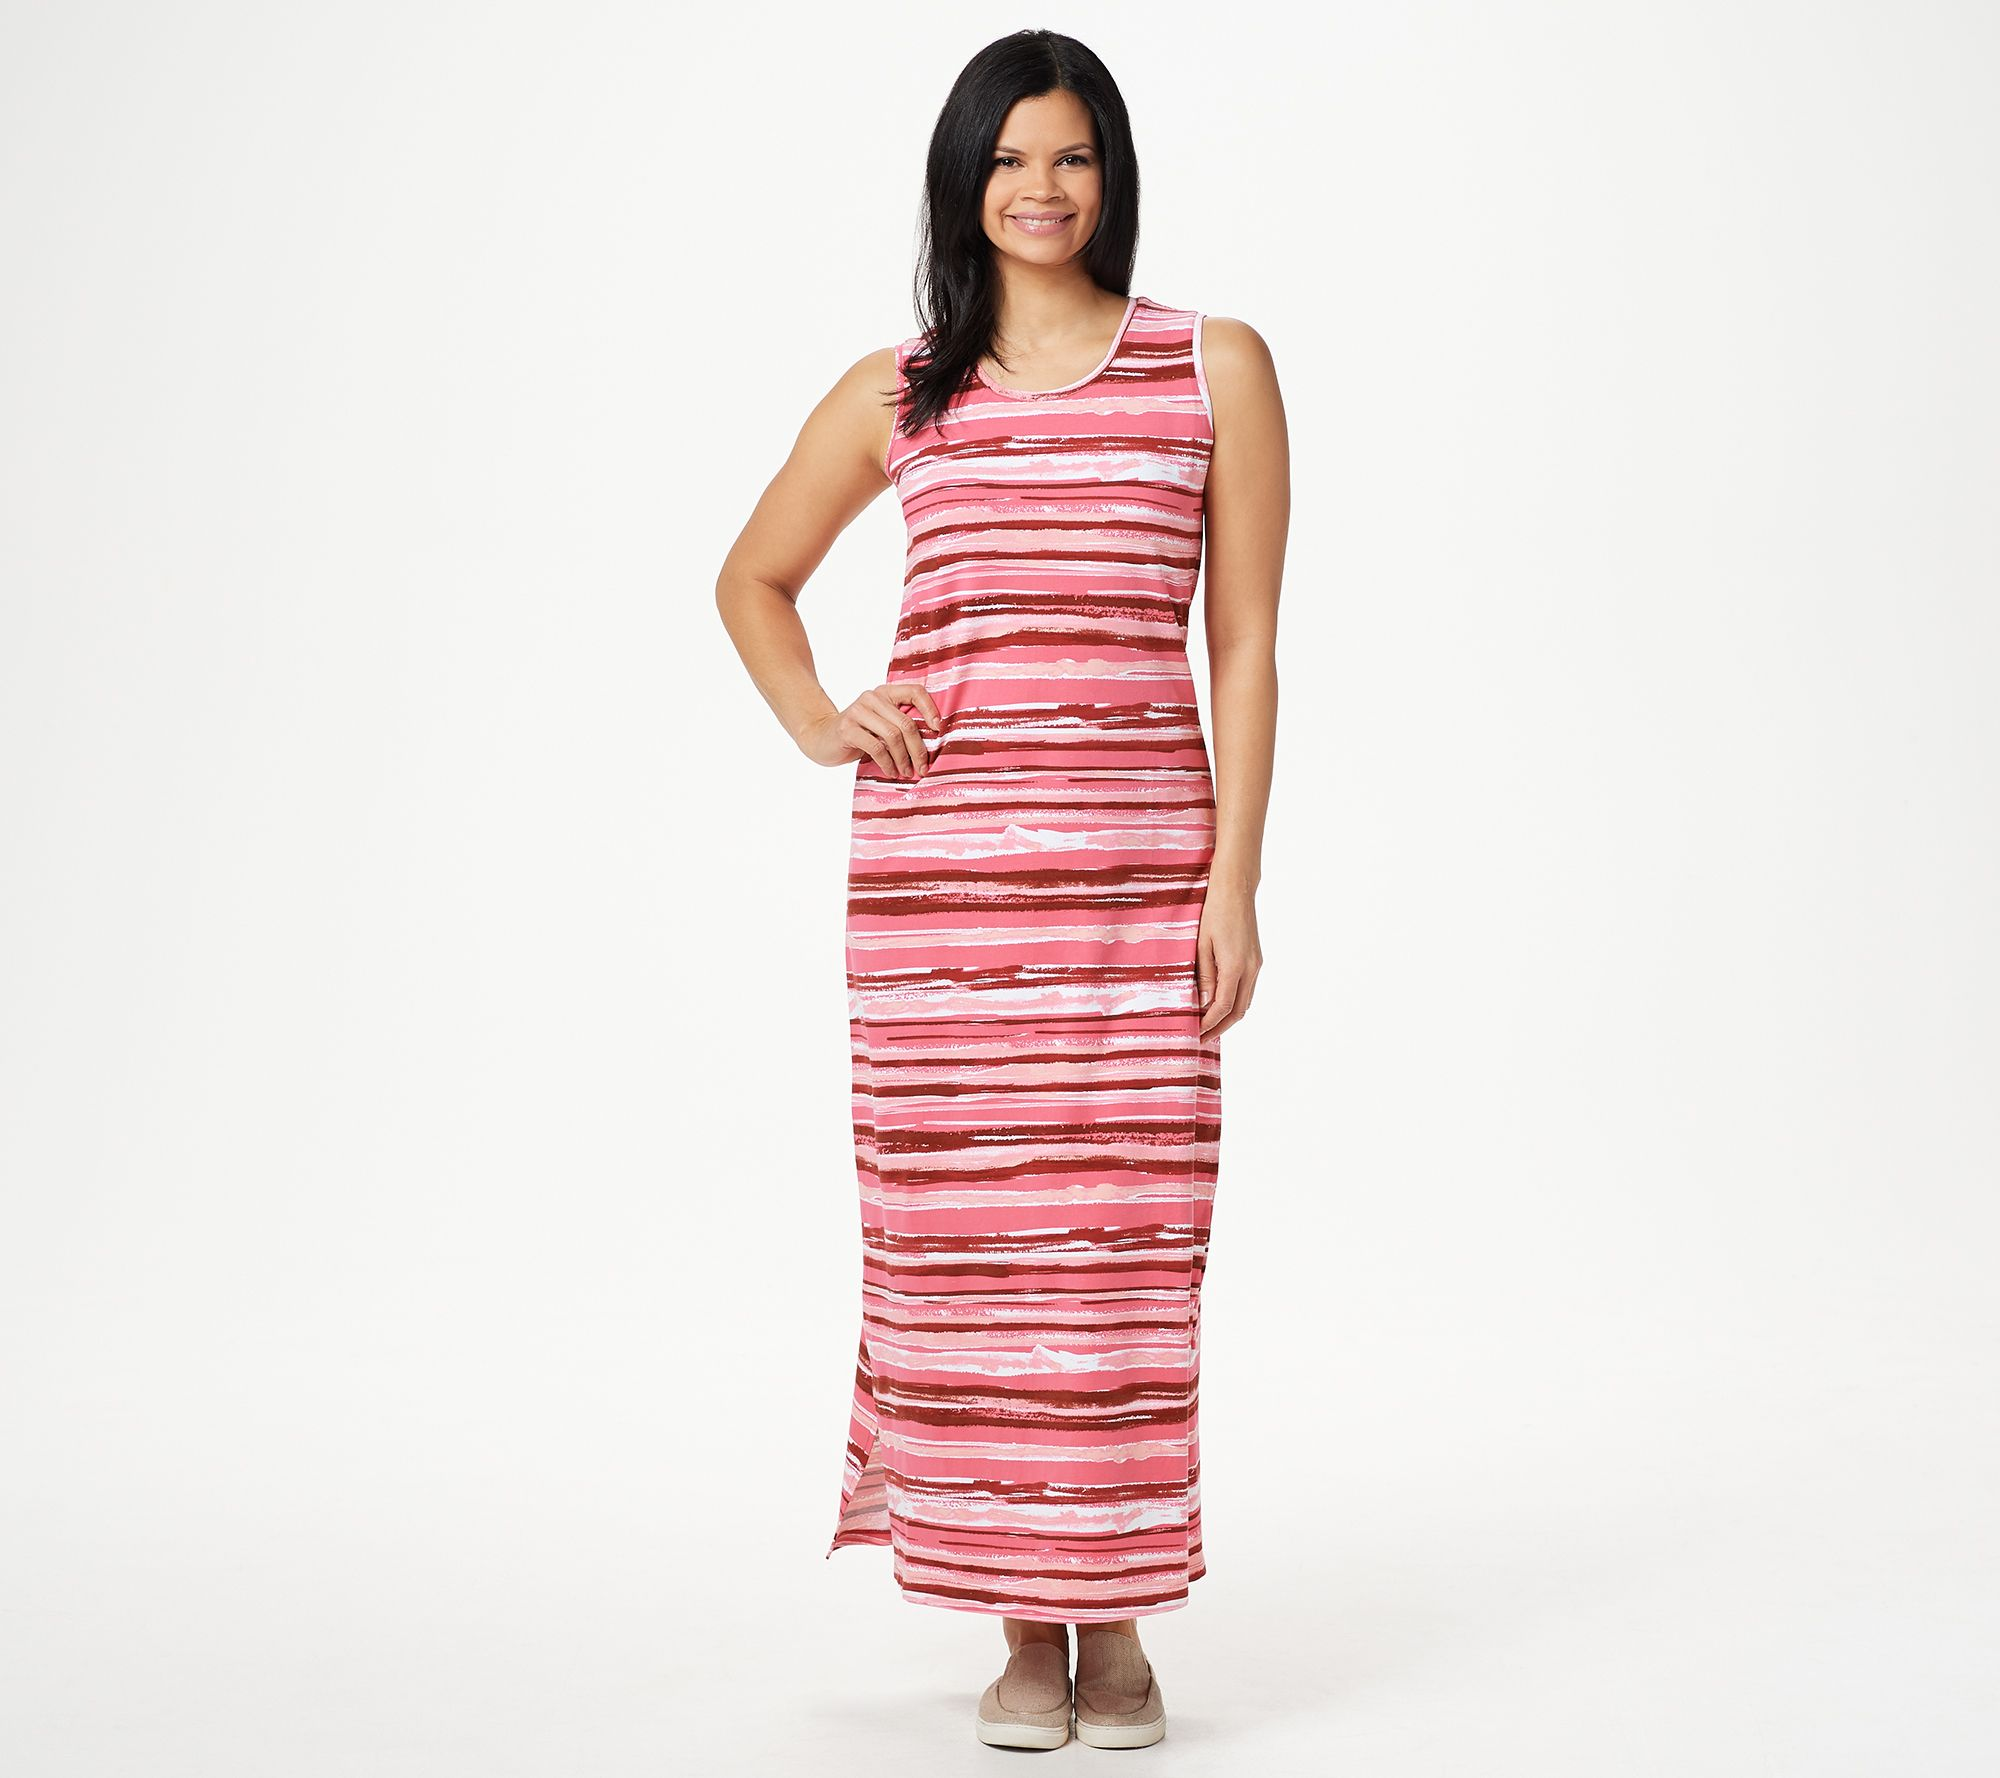 Lisa Rinna Collection Women/'s Petite Knit Maxi Dress with Overlay PM Size QVC